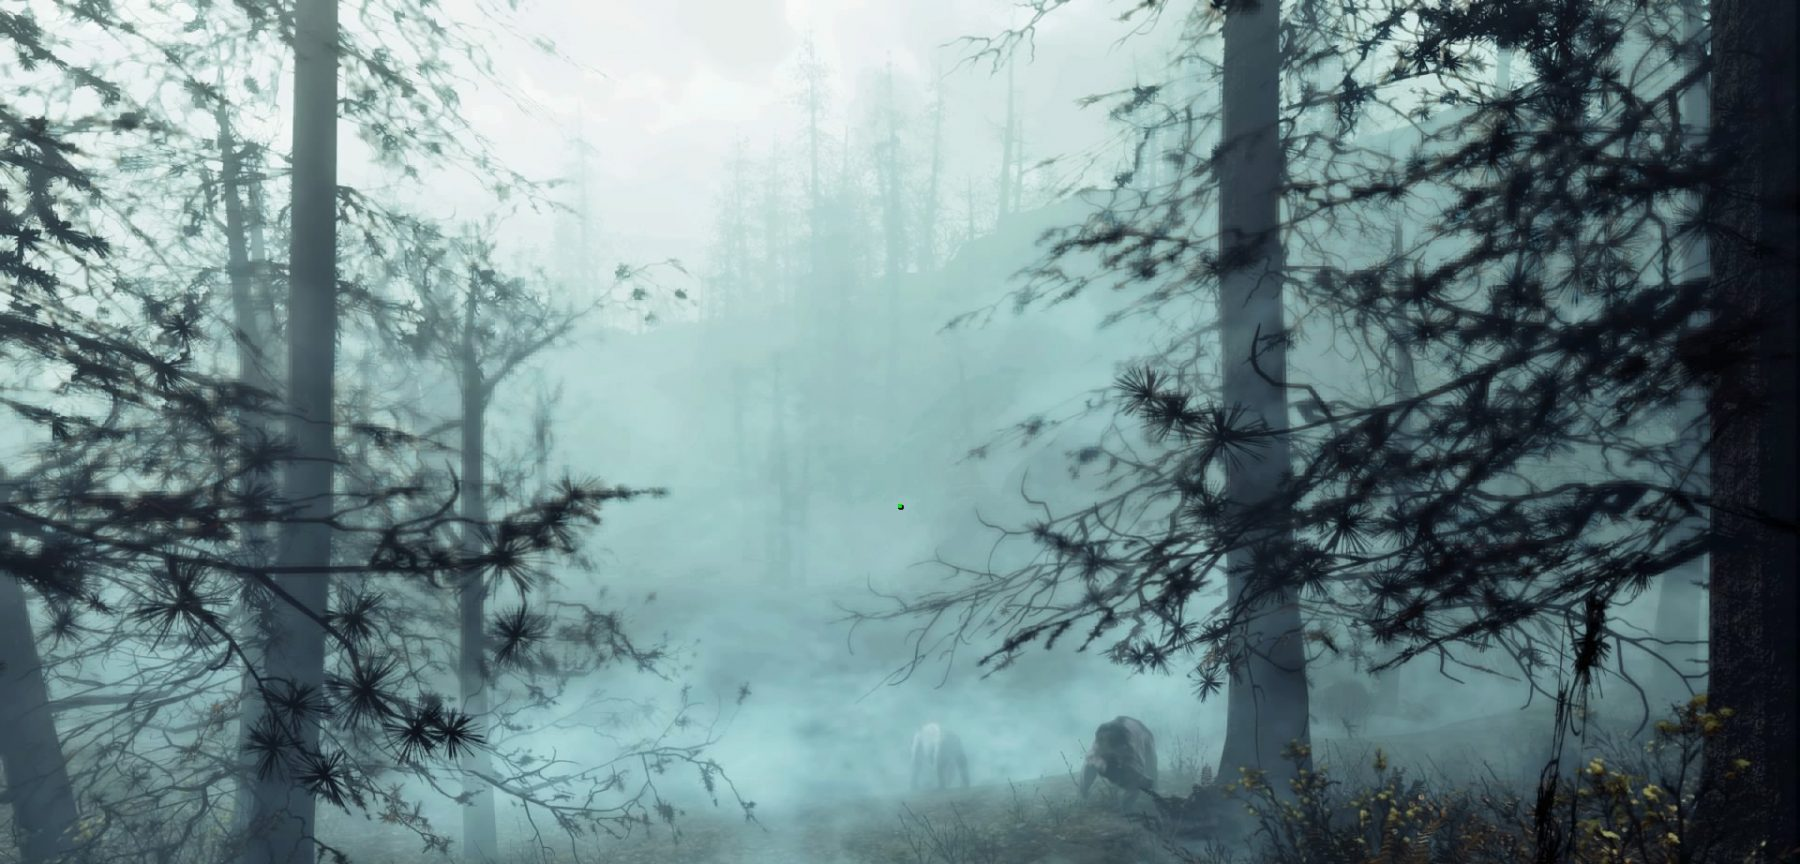 Fallout 4's natural world